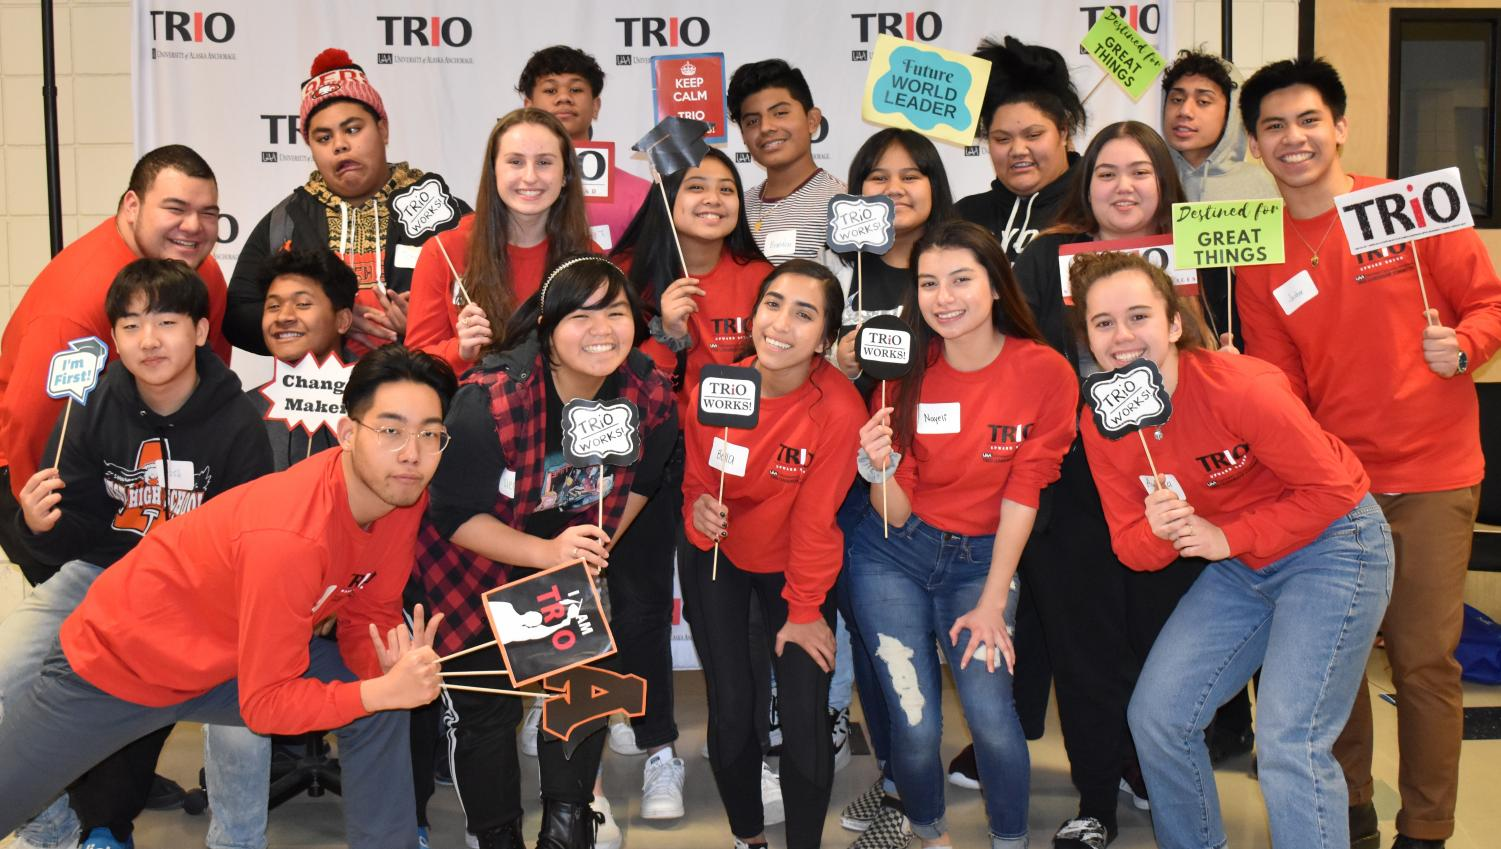 On January 17, 2020, TRIO Upward Bound TLC hosts a welcoming event for the new incoming TRIO members. This event was hosted at West Anchorage High School's Cafeteria, during after school from 2:30 pm to 4:30 pm. They all wanted one last photo before they left to go home.